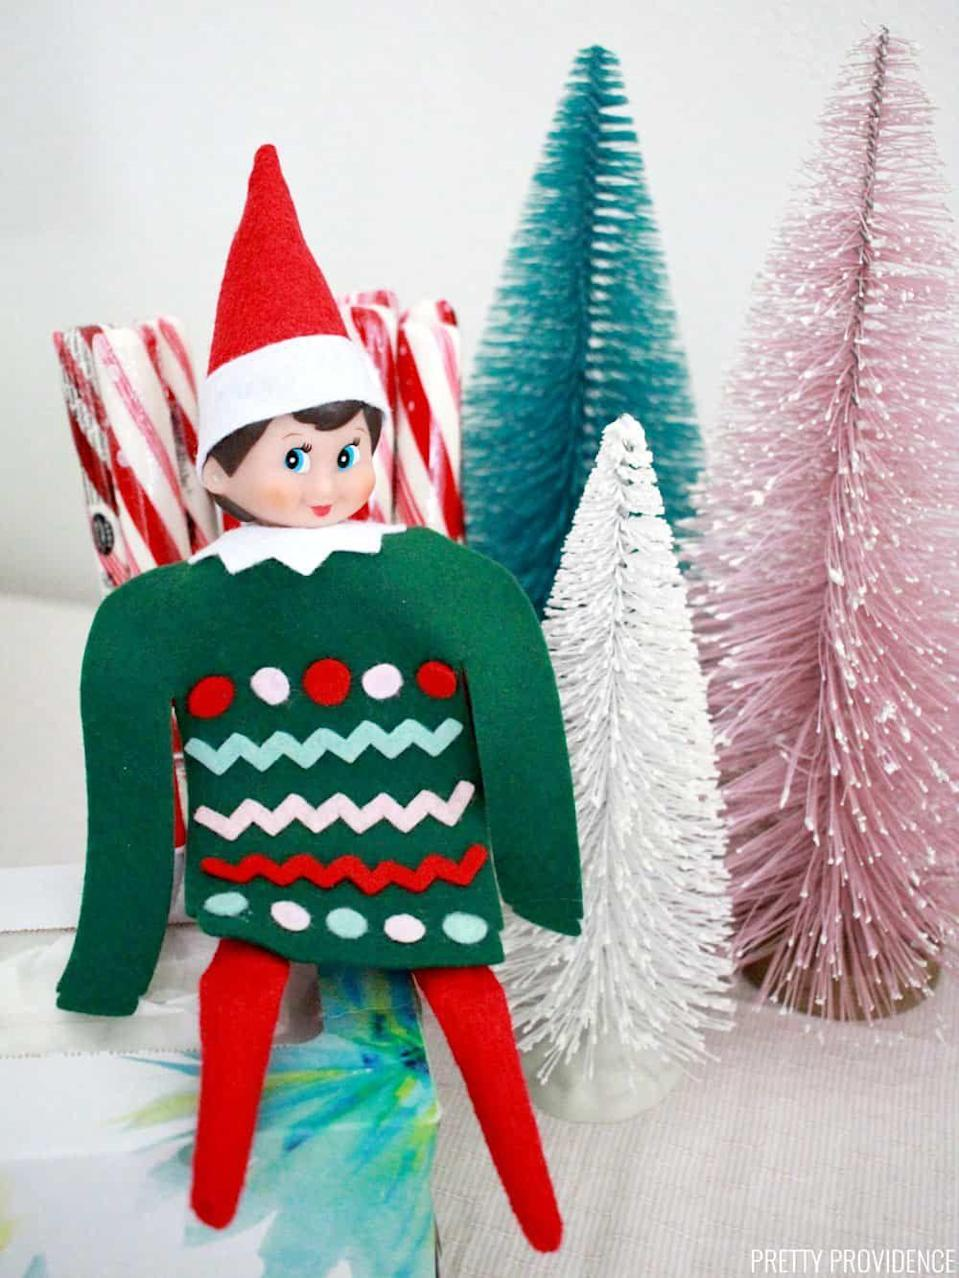 """<p>Everyone in your family will want to don their <a href=""""https://www.countryliving.com/shopping/g3915/christmas-sweaters/"""" rel=""""nofollow noopener"""" target=""""_blank"""" data-ylk=""""slk:ugly Christmas sweaters"""" class=""""link rapid-noclick-resp"""">ugly Christmas sweaters</a> after getting a peek of the Elf in his! It'll become a rite of passage.</p><p><strong>Get the tutorial at <a href=""""https://prettyprovidence.com/elf-on-the-shelf/"""" rel=""""nofollow noopener"""" target=""""_blank"""" data-ylk=""""slk:Pretty Providence"""" class=""""link rapid-noclick-resp"""">Pretty Providence</a>.</strong></p><p><strong><a class=""""link rapid-noclick-resp"""" href=""""https://www.amazon.com/42pcs-Fabric-Assorted-Squares-Nonwoven/dp/B01GCLS32M/?tag=syn-yahoo-20&ascsubtag=%5Bartid%7C10050.g.29656008%5Bsrc%7Cyahoo-us"""" rel=""""nofollow noopener"""" target=""""_blank"""" data-ylk=""""slk:SHOP FELT"""">SHOP FELT</a><br></strong></p>"""